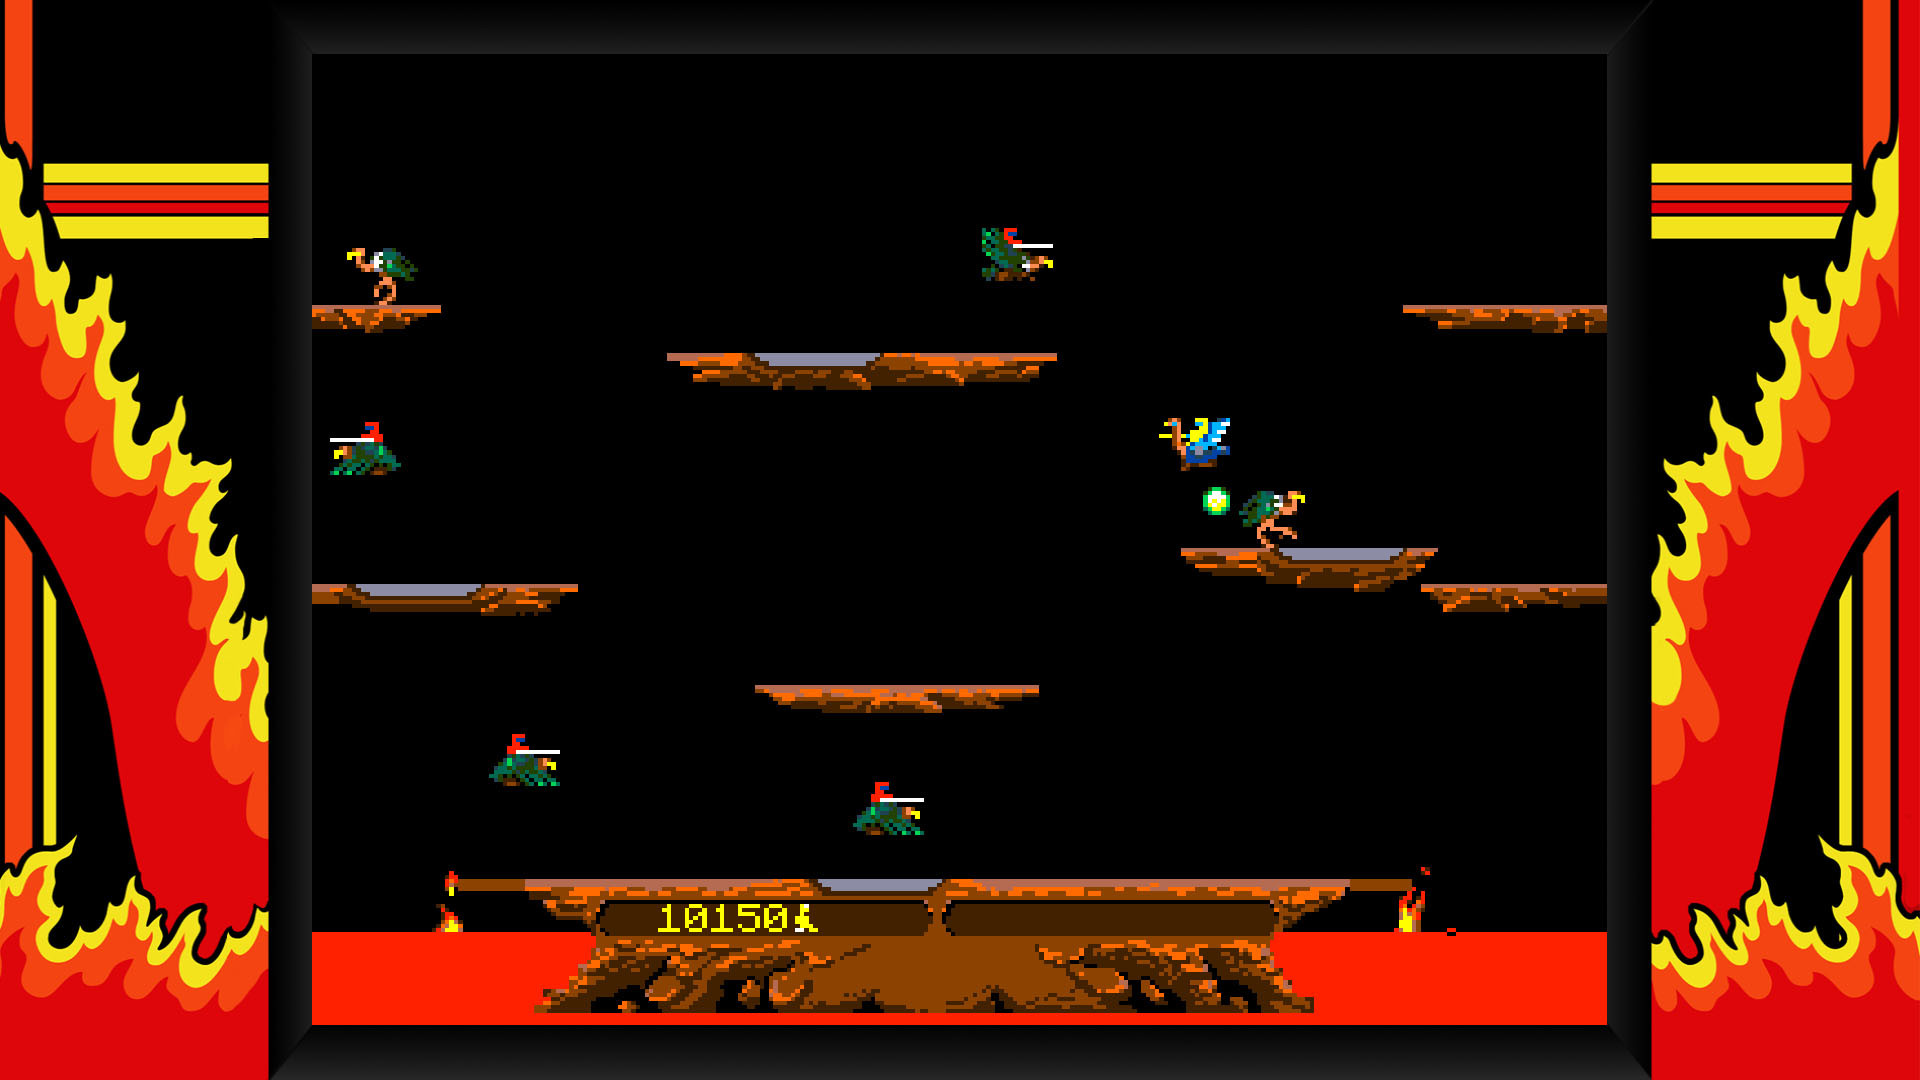 1920x1080 Midway Arcade Origins: Play 31 Arcade Classics Today on PS3